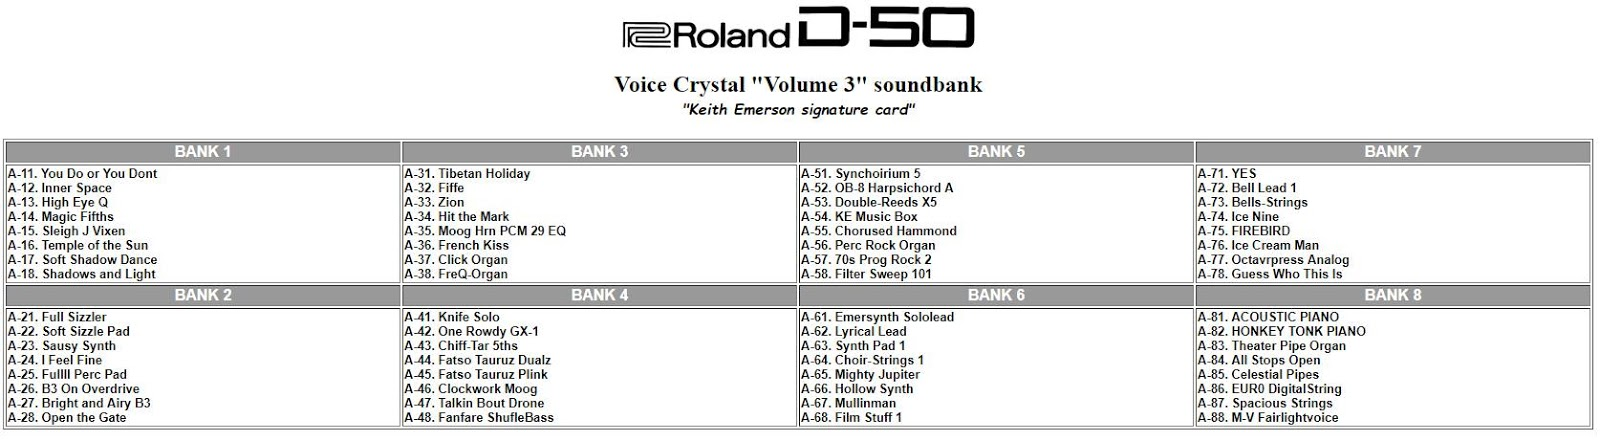 MATRIXSYNTH: Roland D-50 Voice Crystal